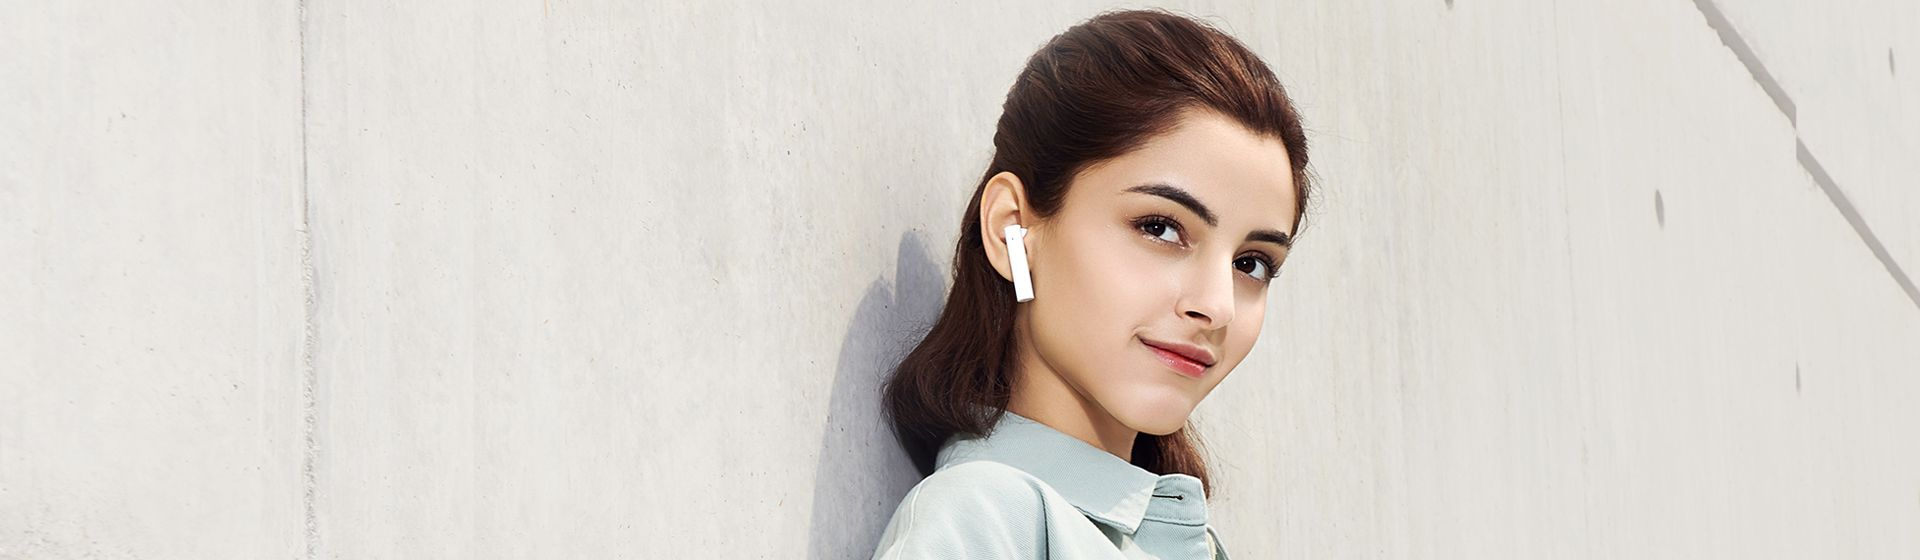 Mi True Wireless Earphones 2 Basic: tudo sobre os fones da Xiaomi